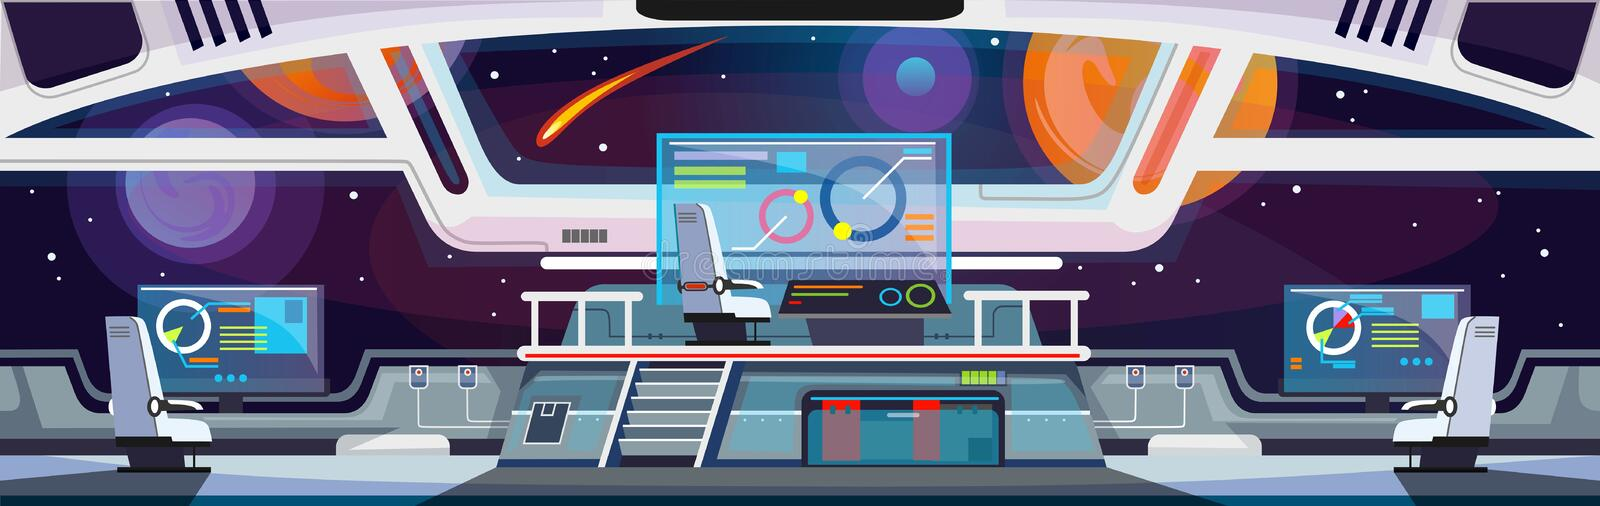 Cartoon spaceship interior design. Vector illustration royalty free illustration